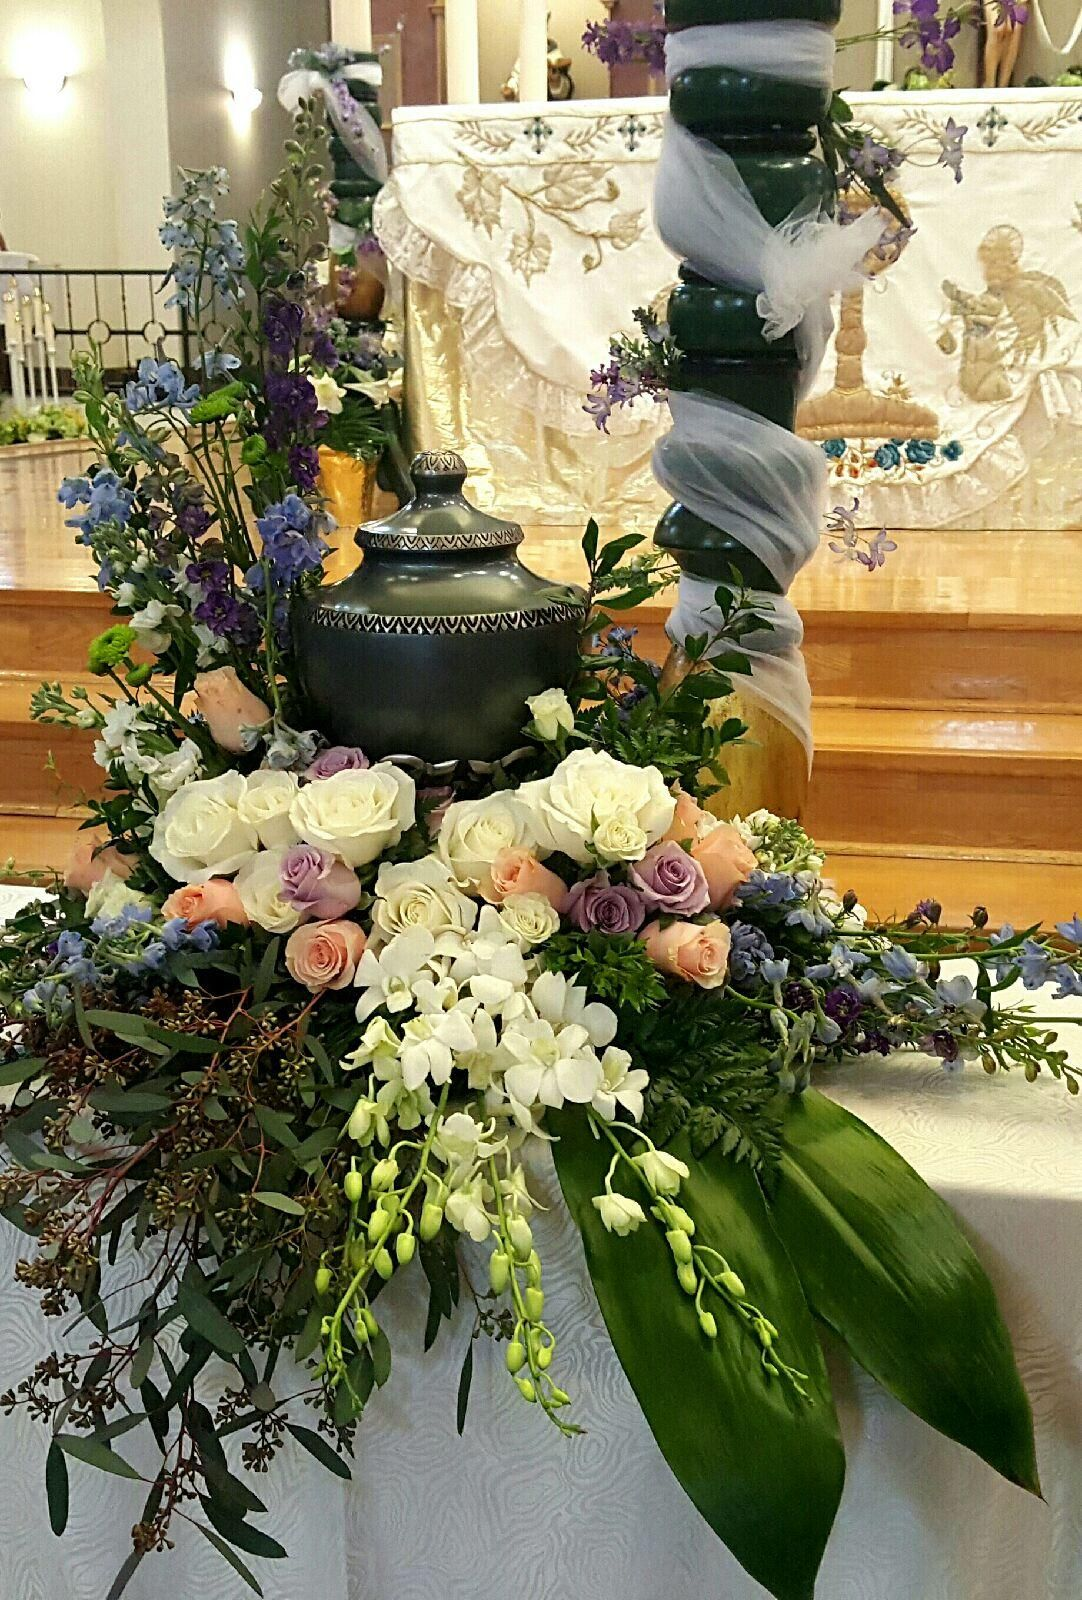 Thompsons flower shop cremation urn and floral arrangement thompsons flower shop cremation urn and floral arrangement dhlflorist Image collections